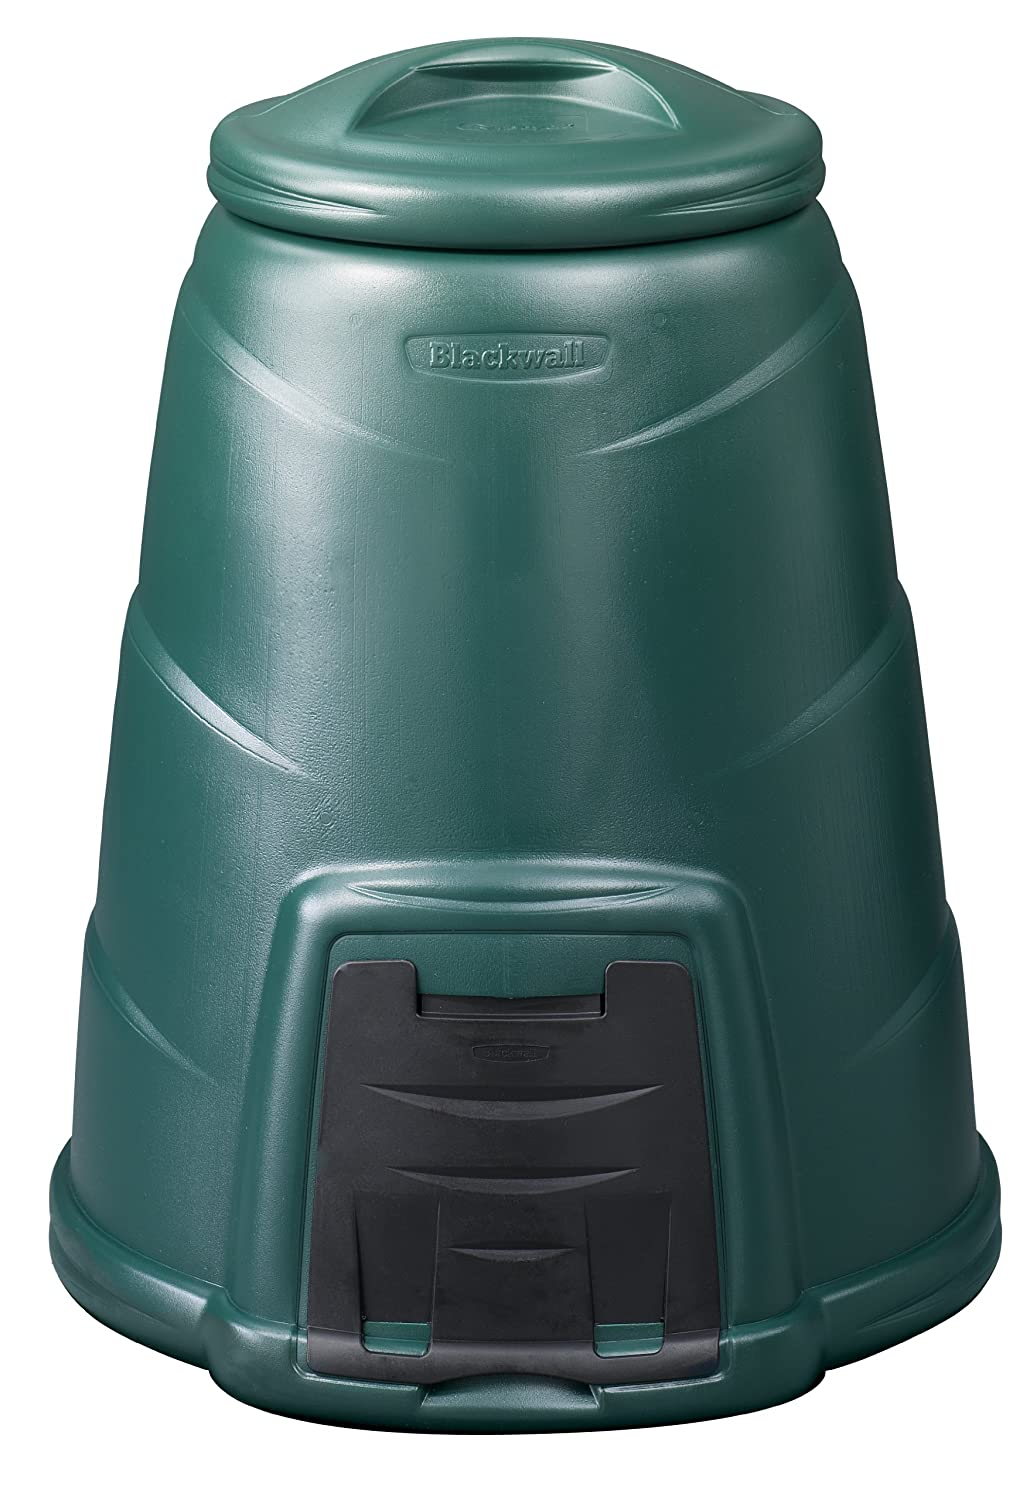 Blackwall - Compostador (330 L), color verde: Amazon.es: Jardín